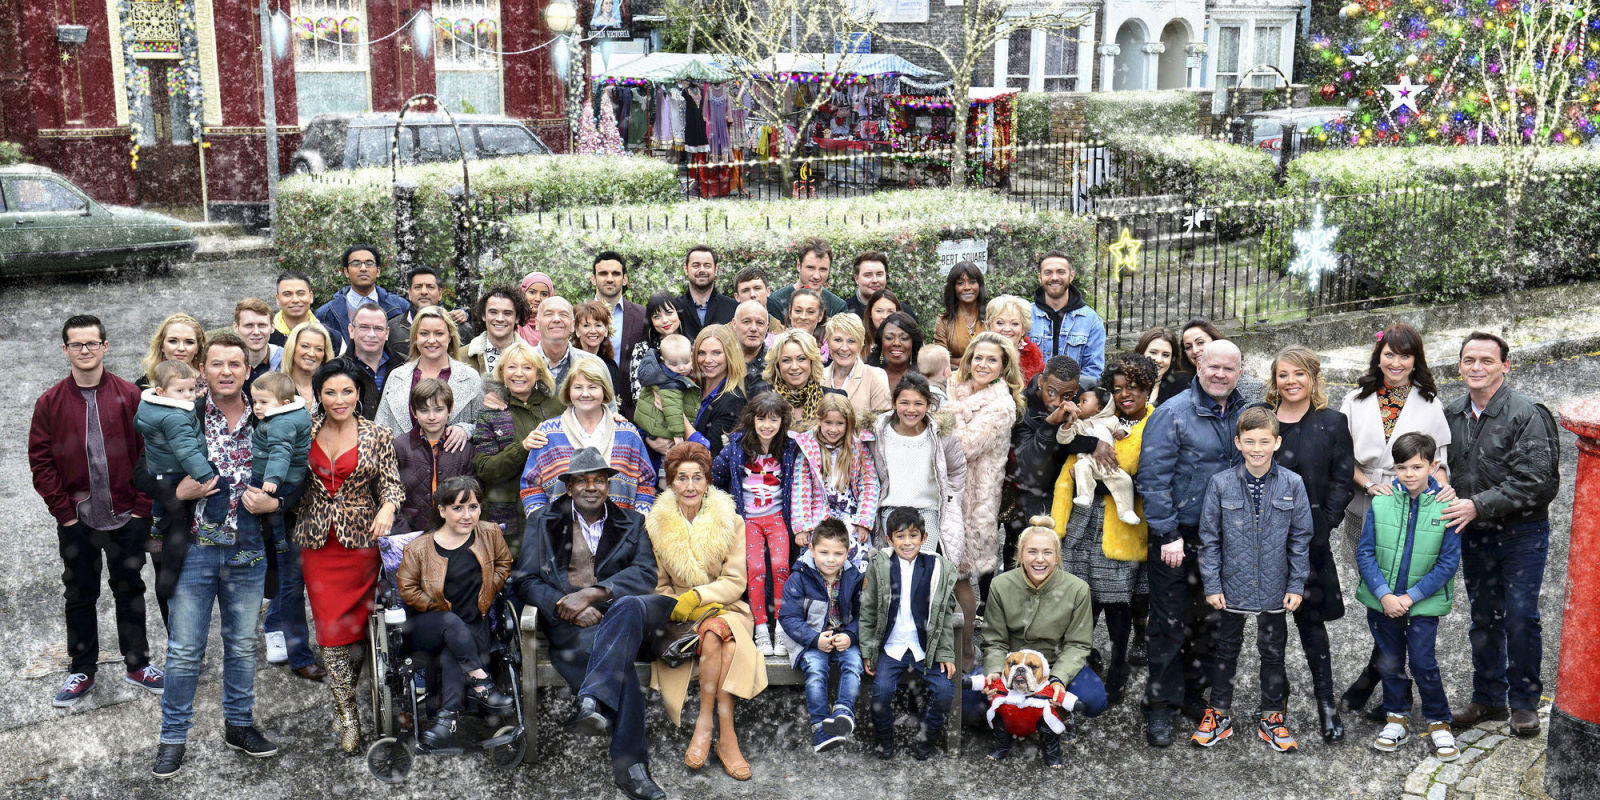 meet and greet hollyoaks cast 2014